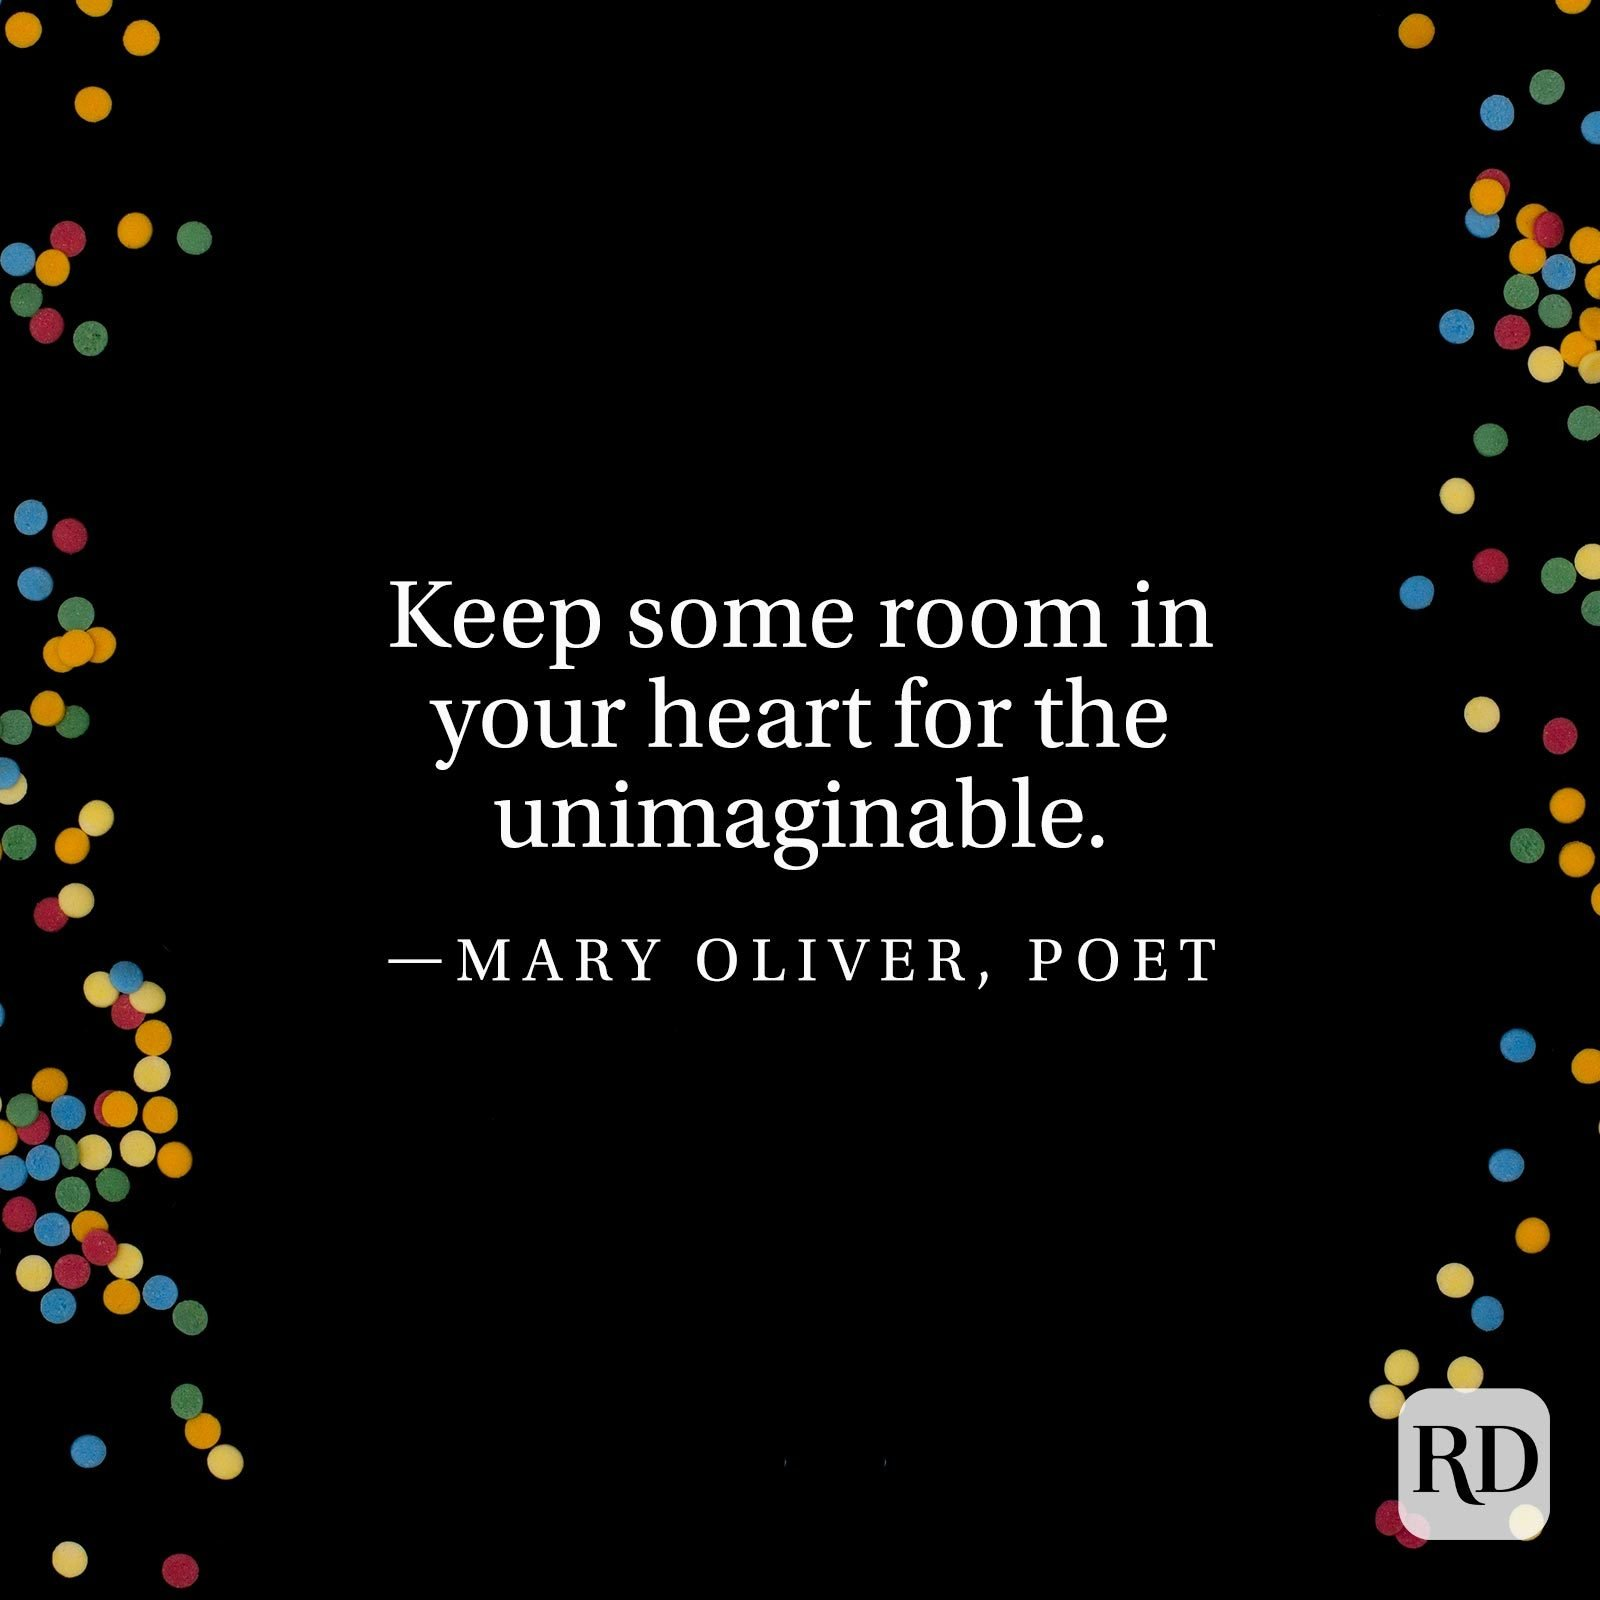 """Keep some room in your heart for the unimaginable."" —Mary Oliver, poet"